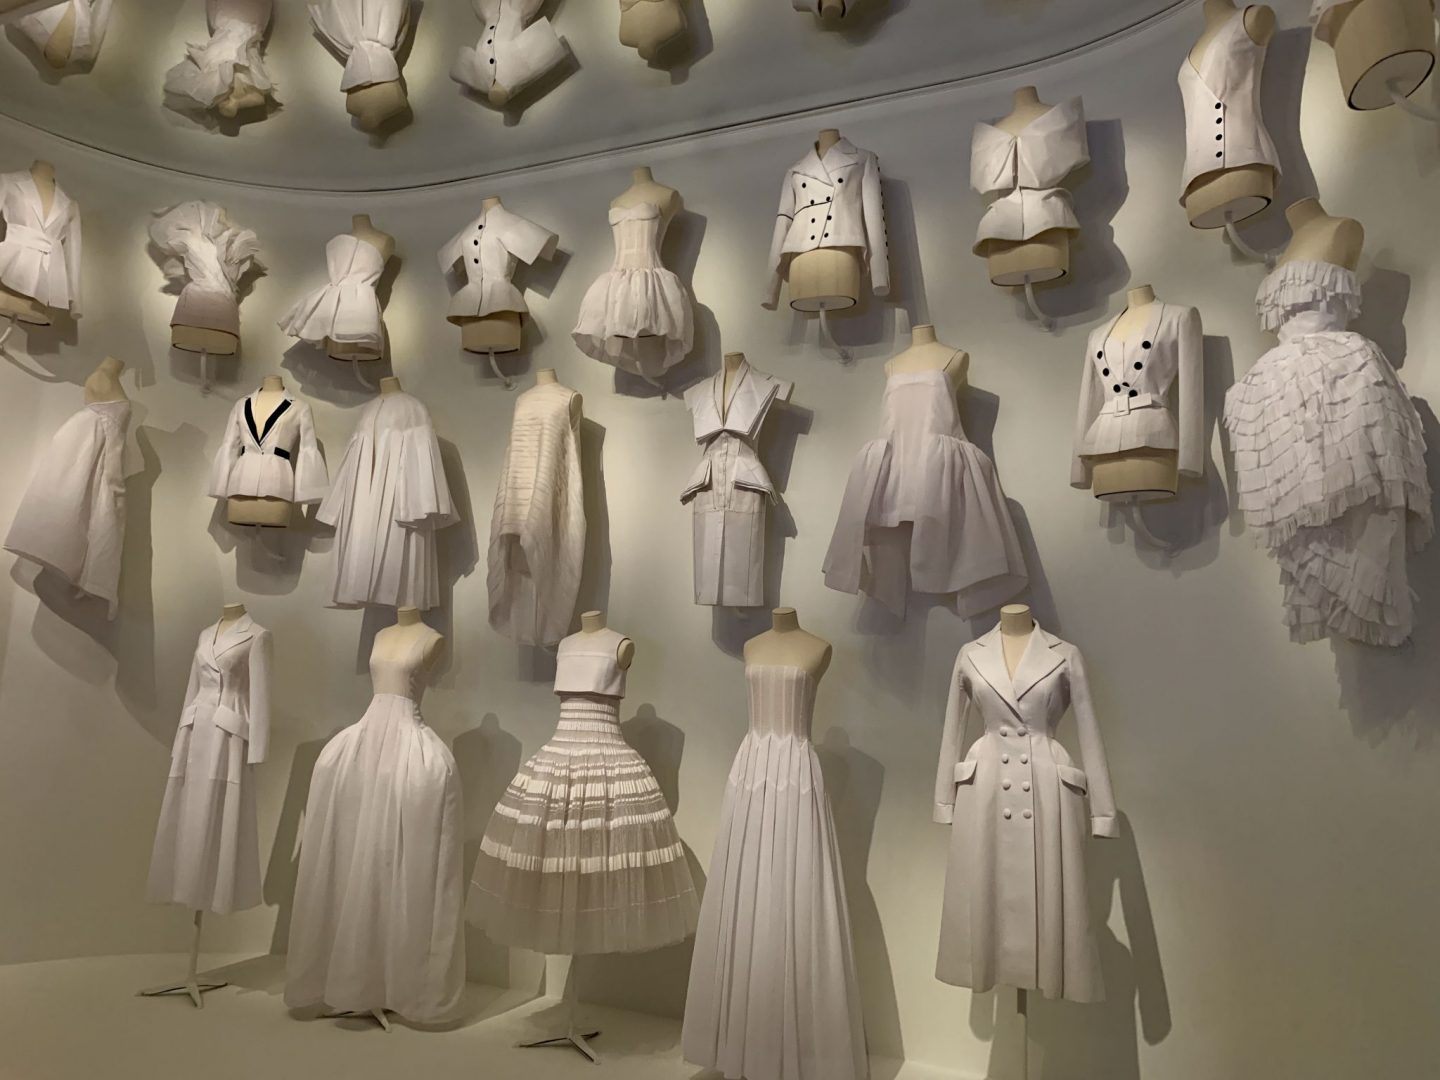 Christian Dior Art Exhibit at the Dallas Museum of Art white